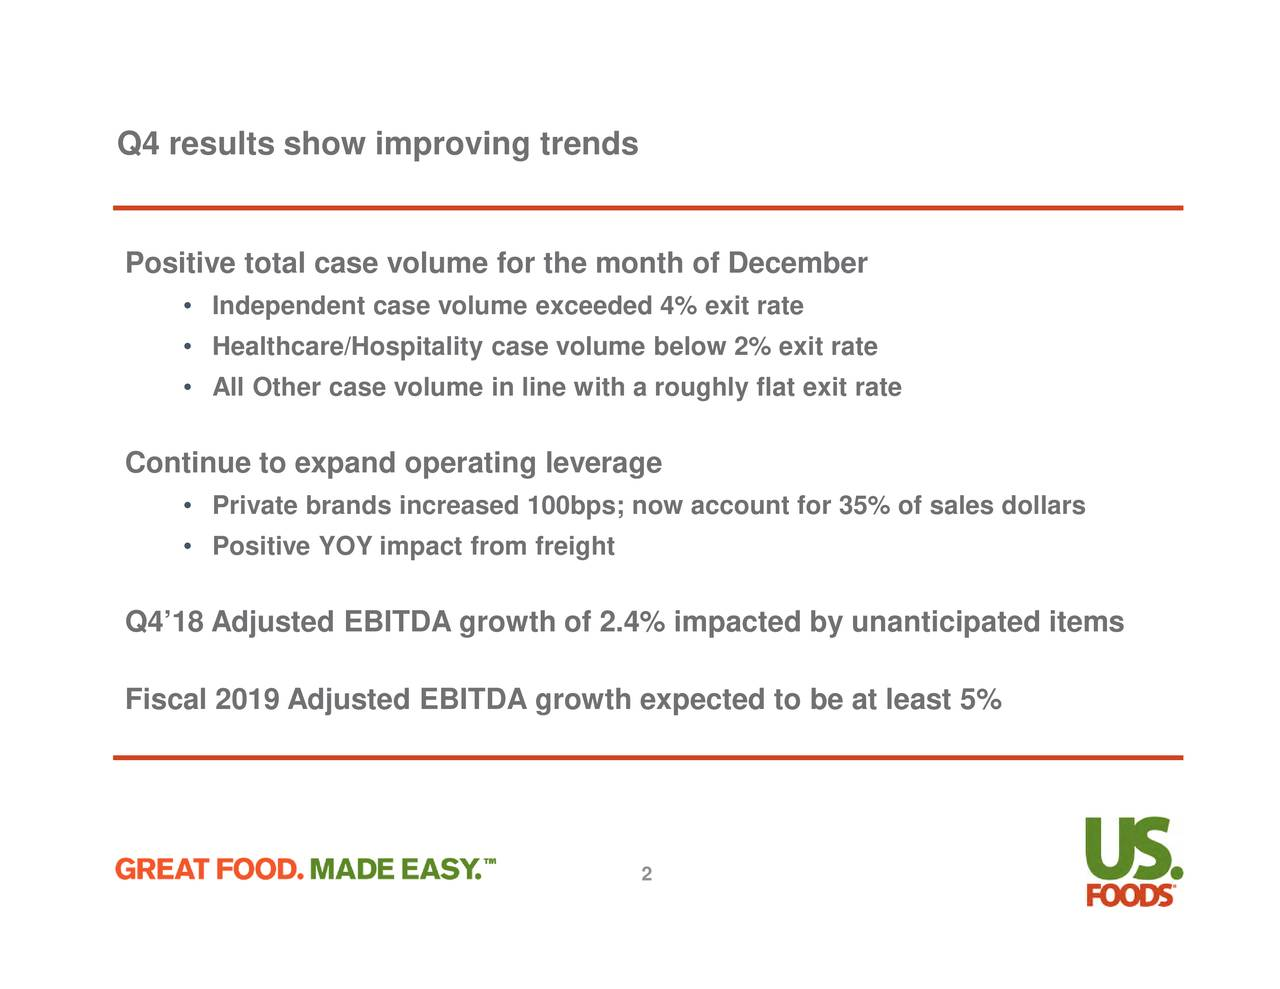 Positive total case volume for the month of December • Independent case volume exceeded 4% exit rate • Healthcare/Hospitality case volume below 2% exit rate • All Other case volume in line with a roughly flat exit rate Continue to expand operating leverage • Private brands increased 100bps; now account for 35% of sales dollars • Positive YOY impact from freight Q4'18 Adjusted EBITDA growth of 2.4% impacted by unanticipated items Fiscal 2019 Adjusted EBITDA growth expected to be at least 5% 2